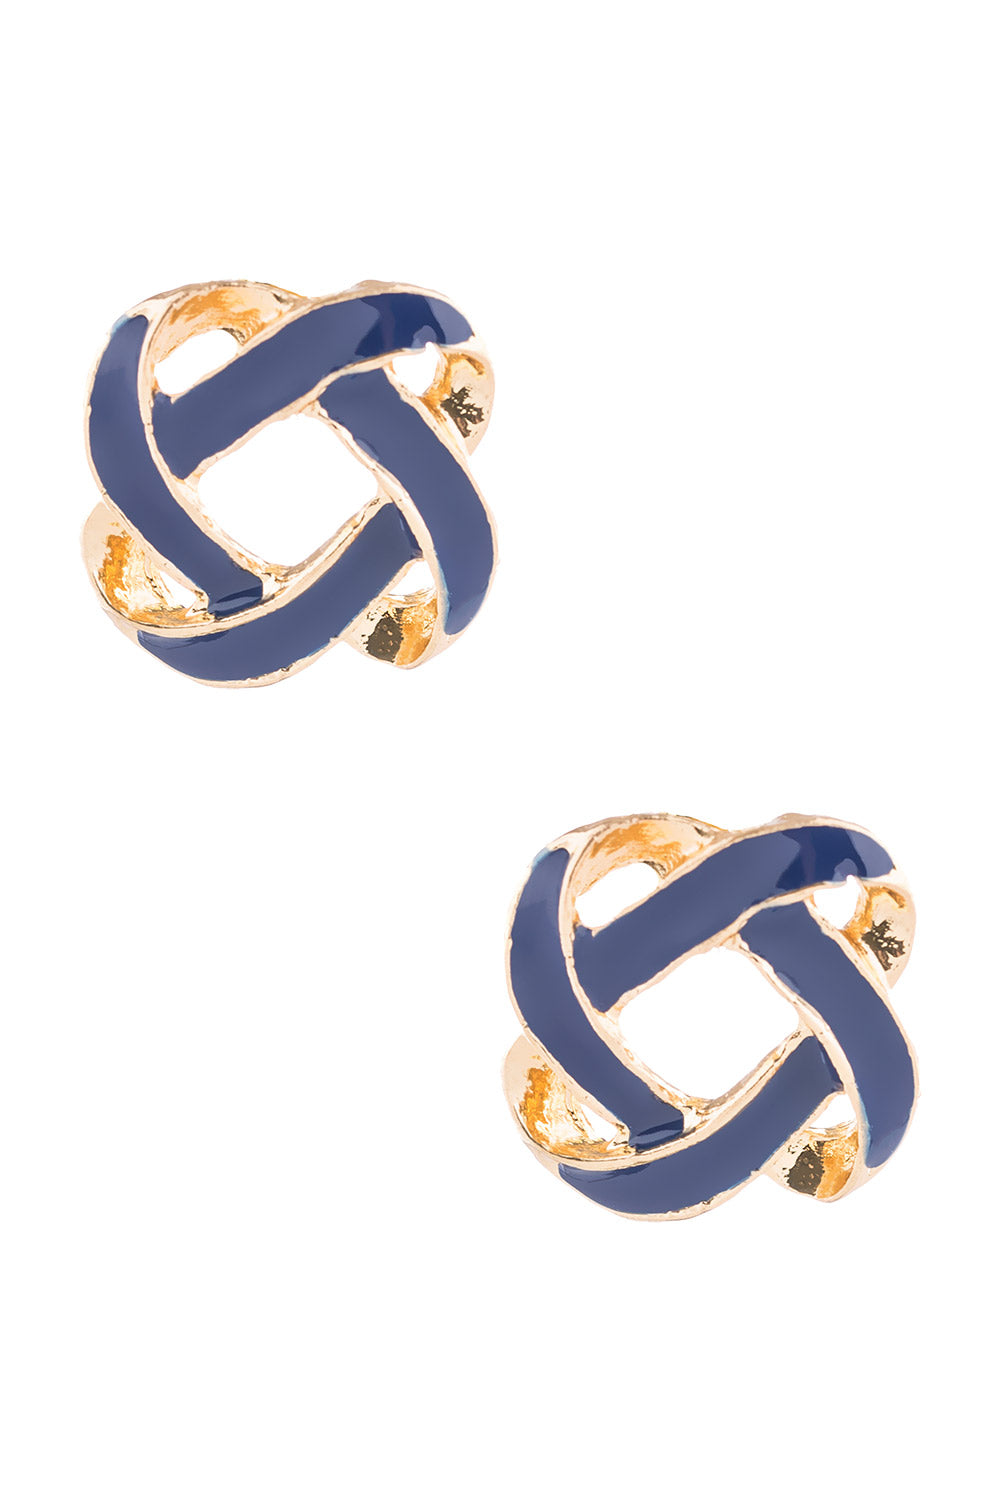 Type 1 Grand Prize Earrings